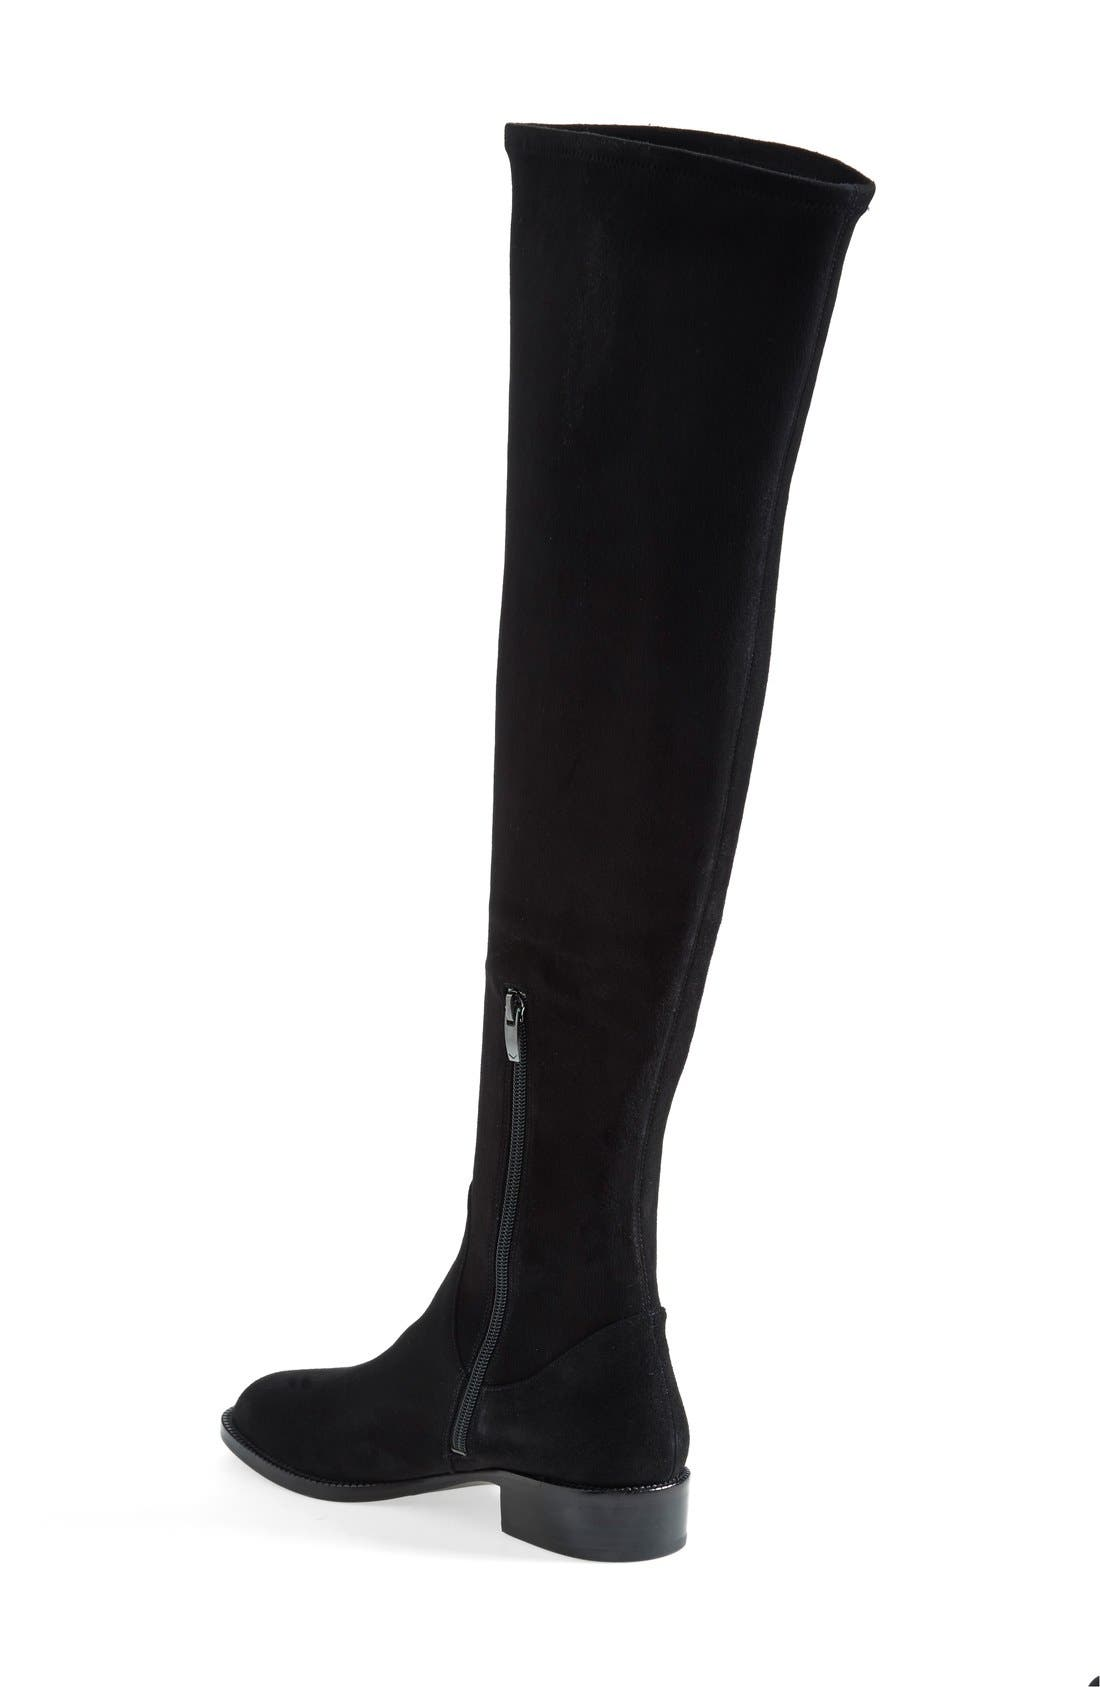 Alternate Image 2  - Via Spiga 'Boni' Over the Knee Boot (Women)